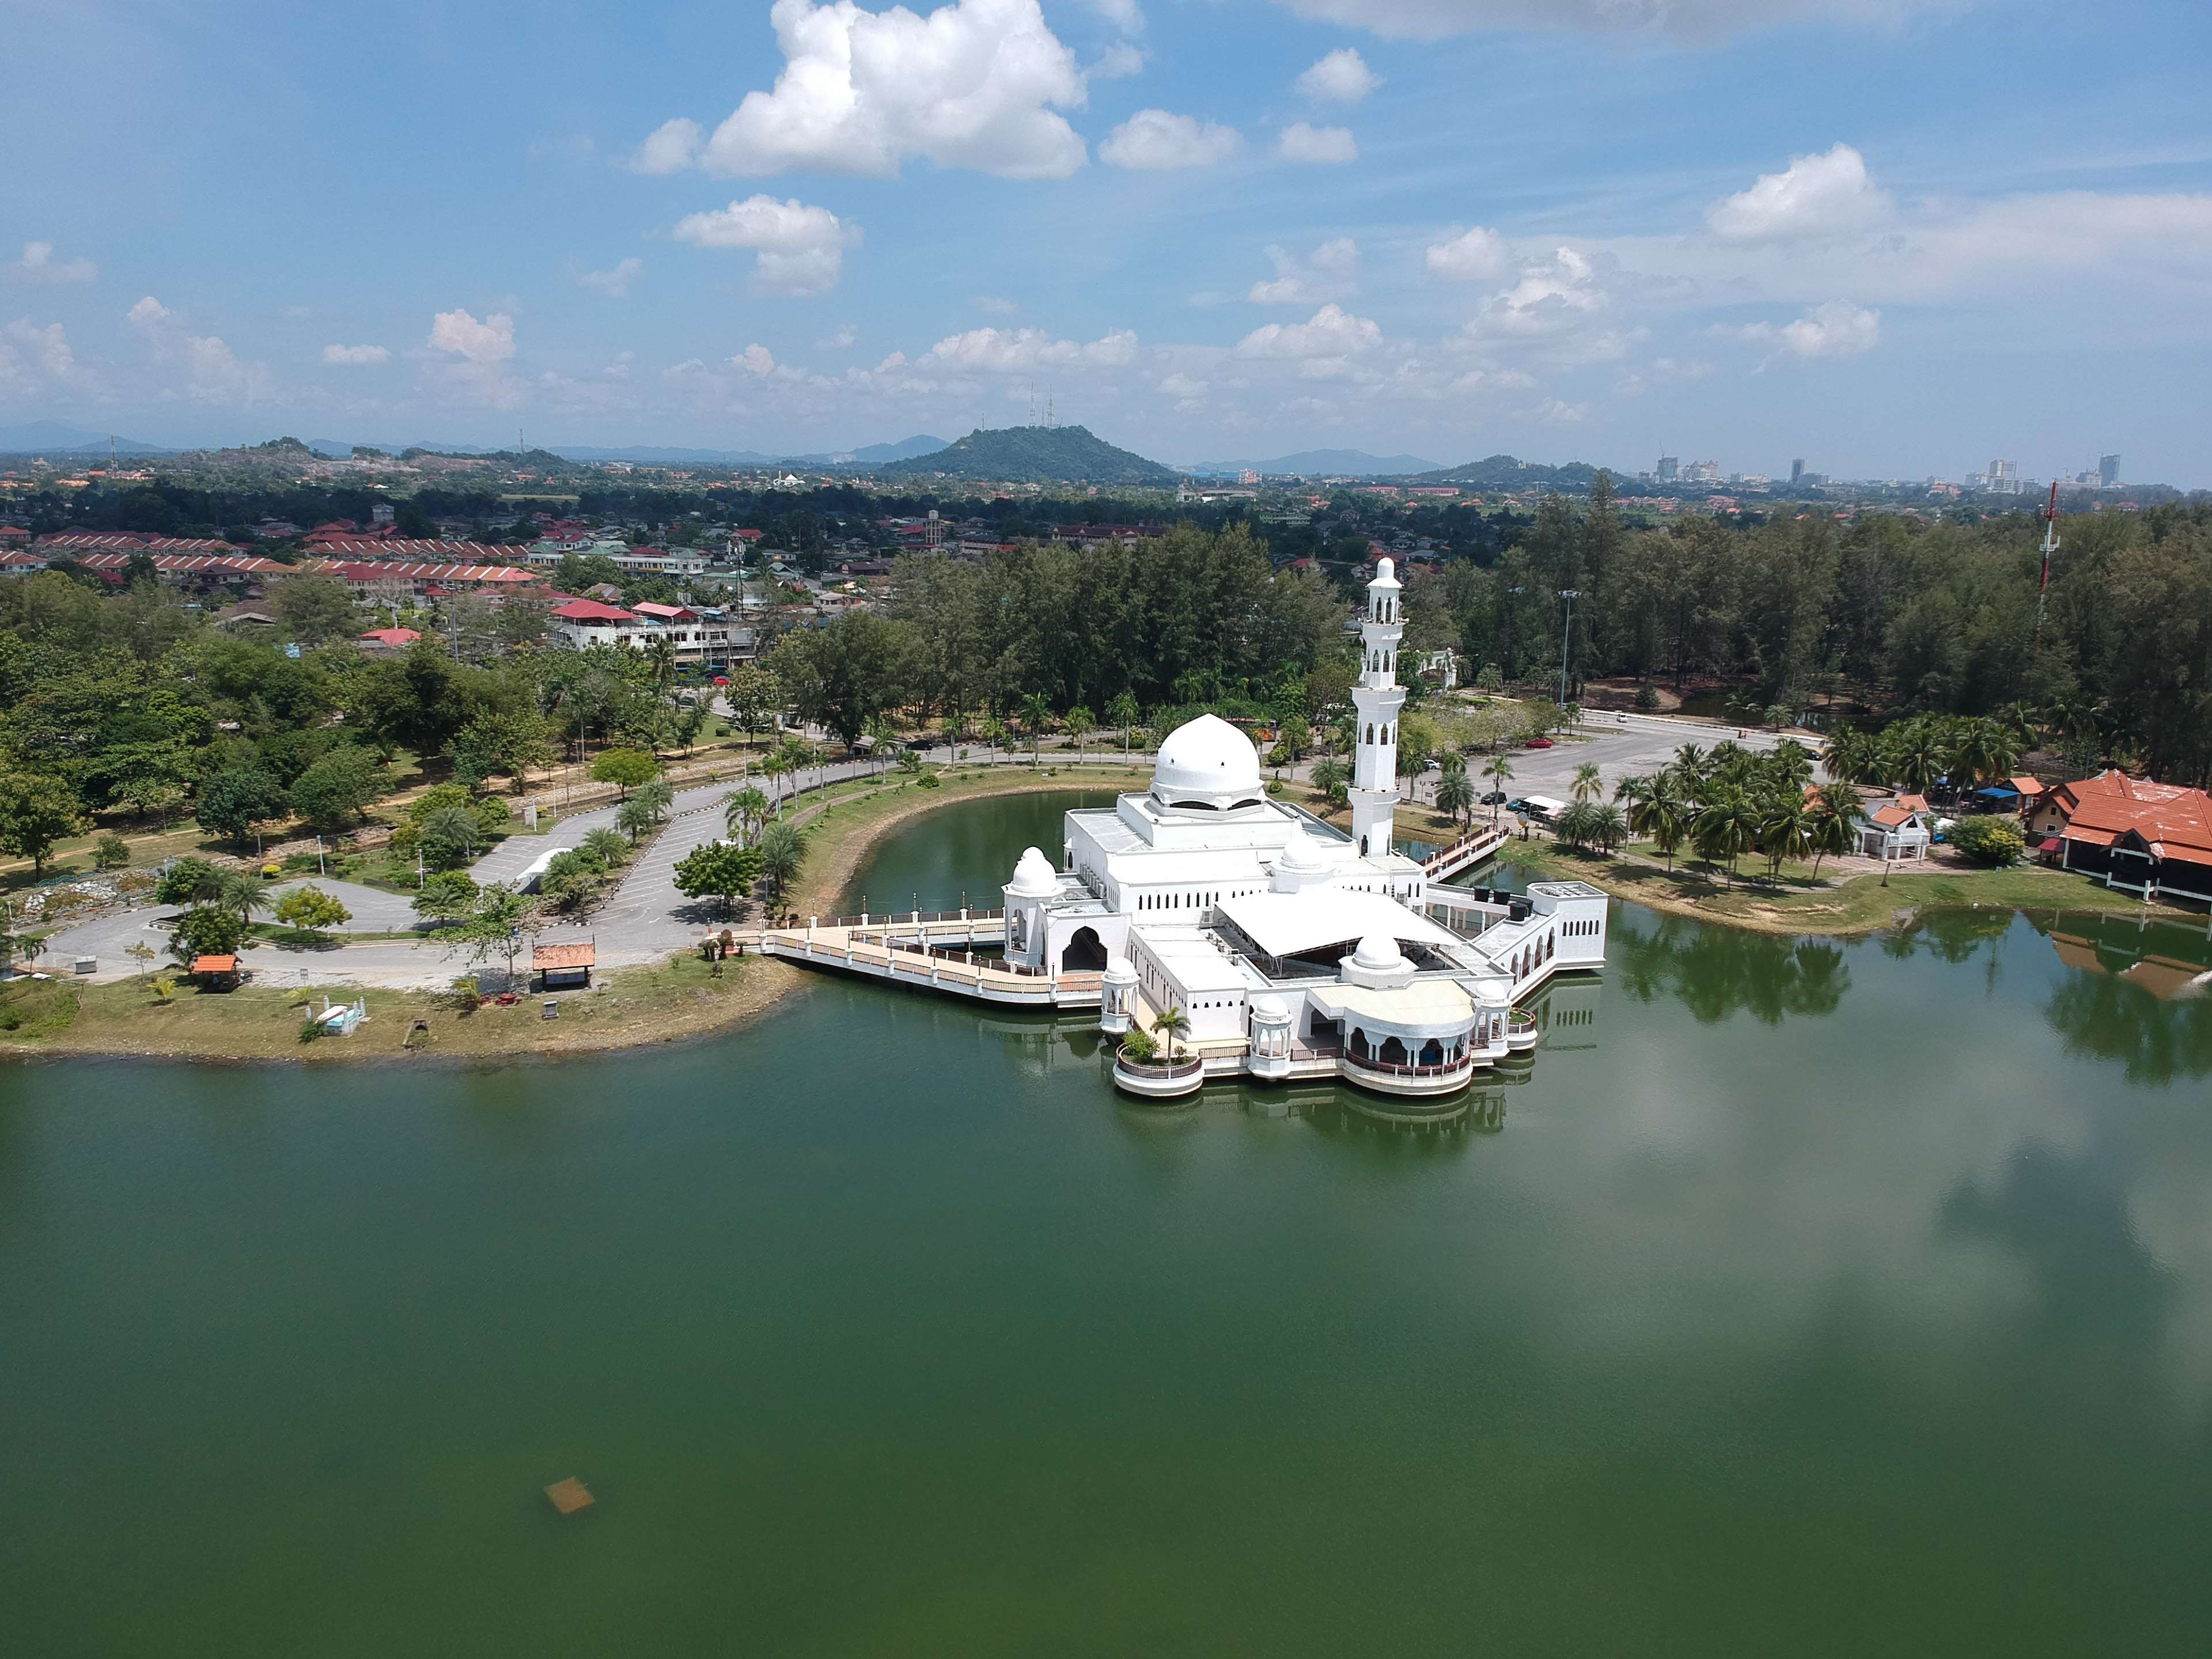 Aerial Shot Aerial View Architecture Birds Eye View From Above Lake Mosque River Sky Town Beautiful Scenery Pictures Scenic Photography Photography